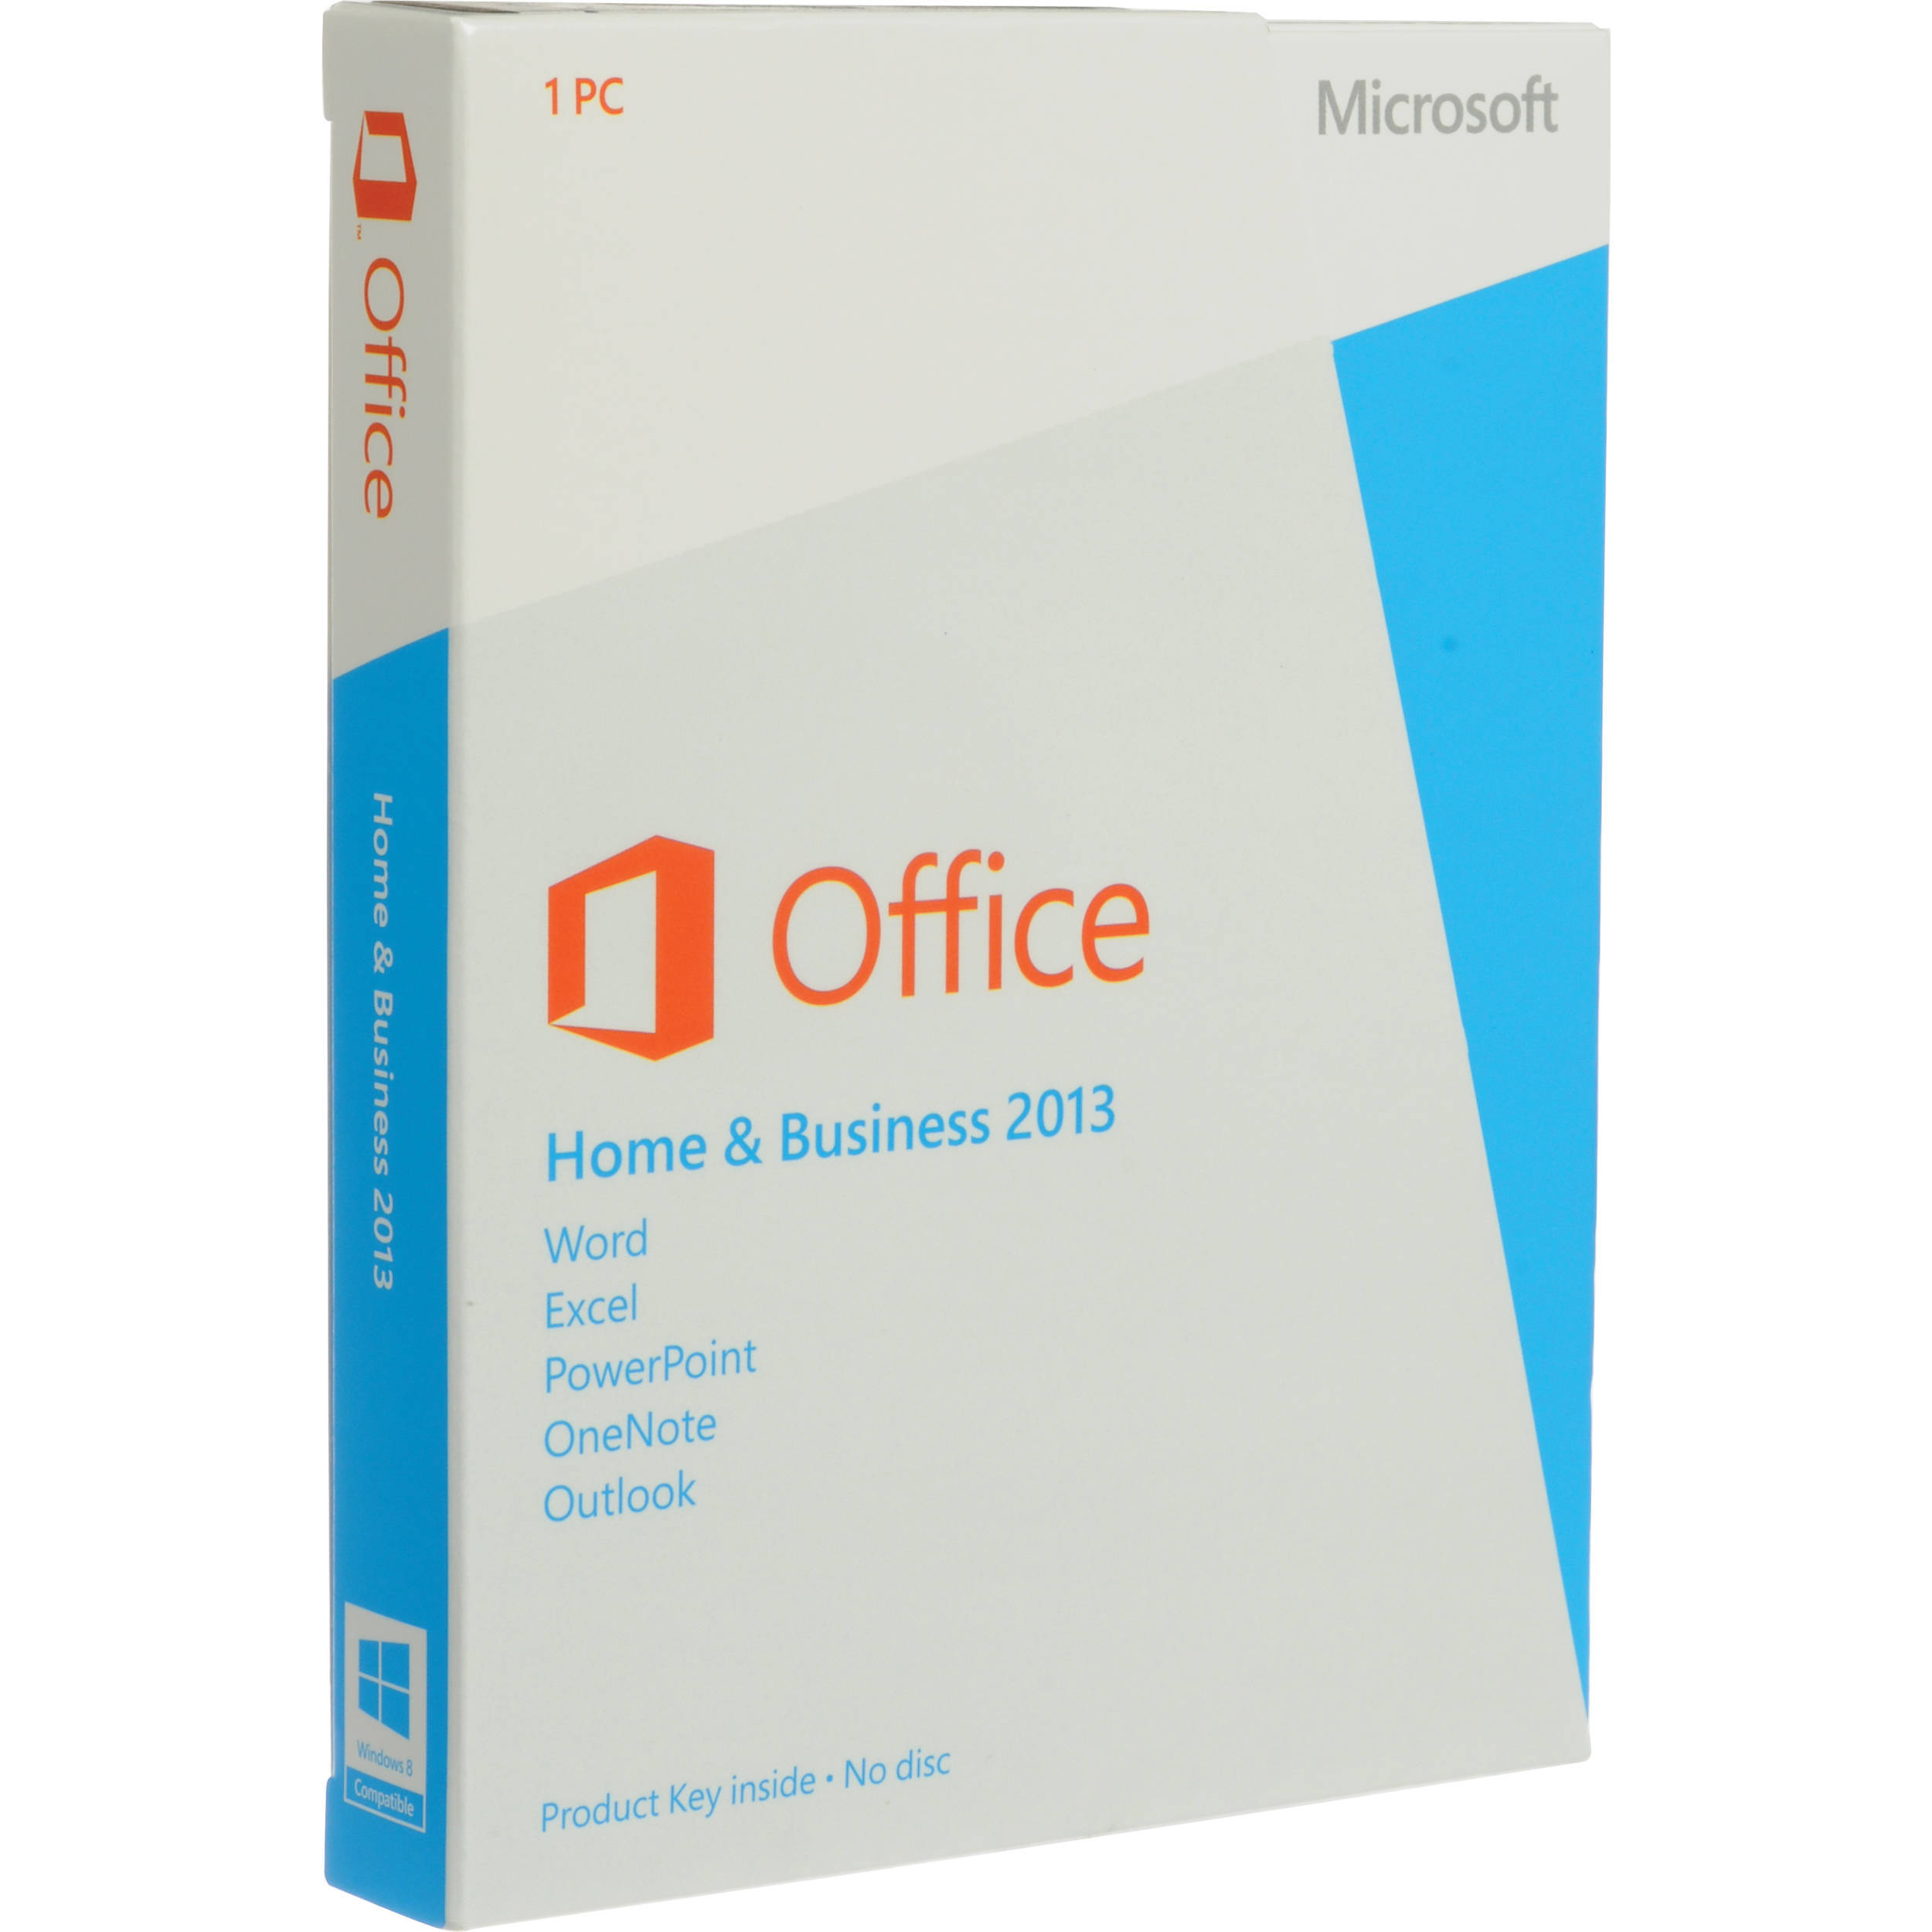 Microsoft Office Home & Business 2013 for Windows AAA-02675